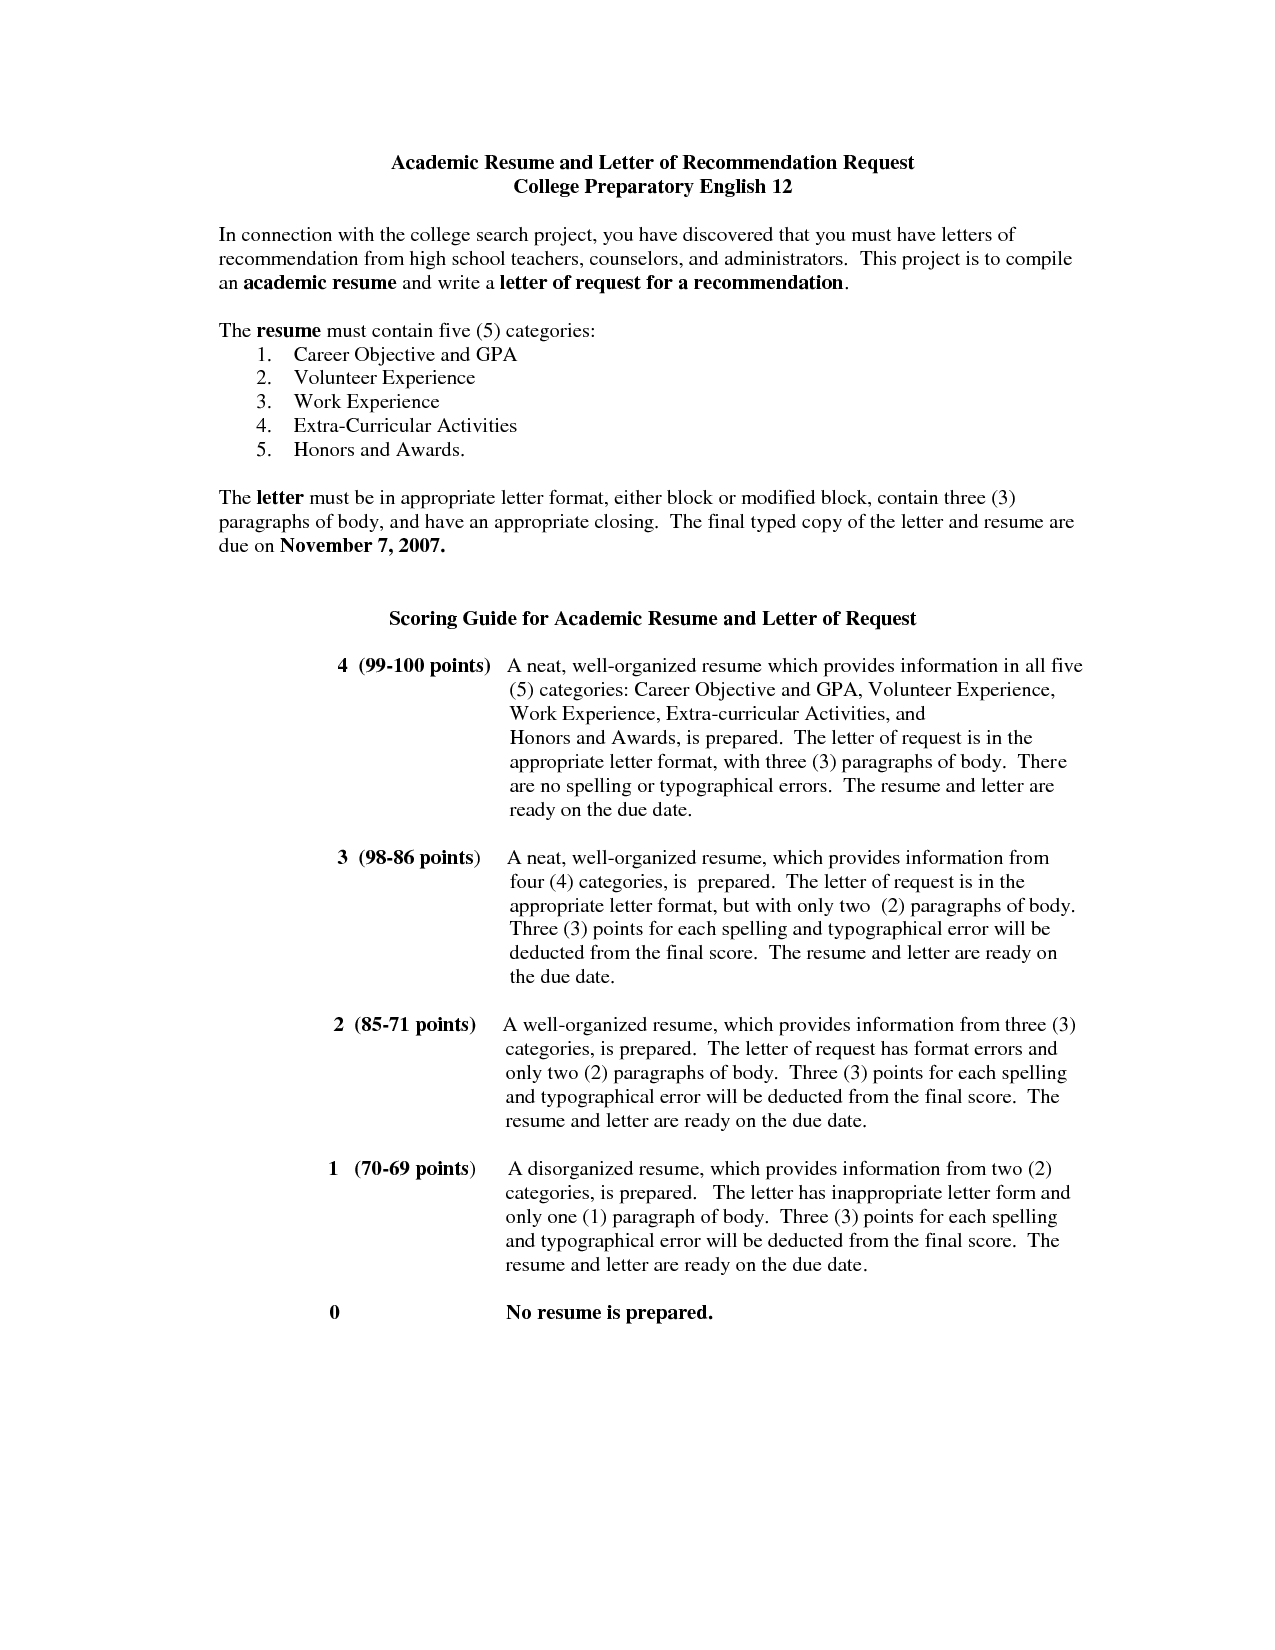 Resume Format Recommendations Resume Format Resume Template Examples Medical Resume Resume Examples